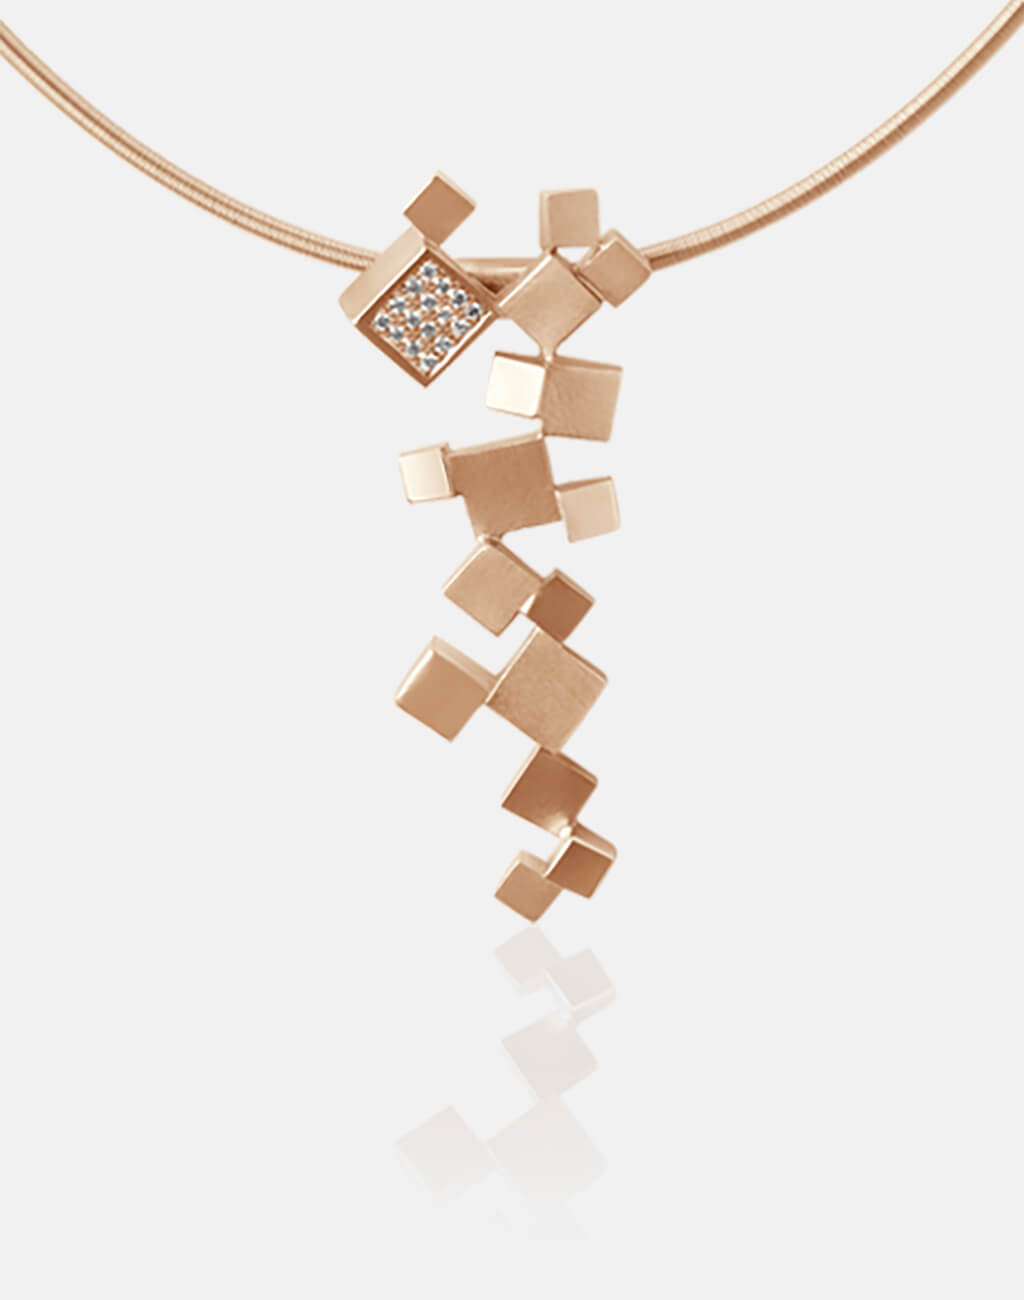 Quadroci | Collier, Kette, Kettenanhänger - 750/- Roségold, Diamanten-Brillanten | necklace, pendant - 18kt rose gold, diamonds | SYNO-Schmuck.com